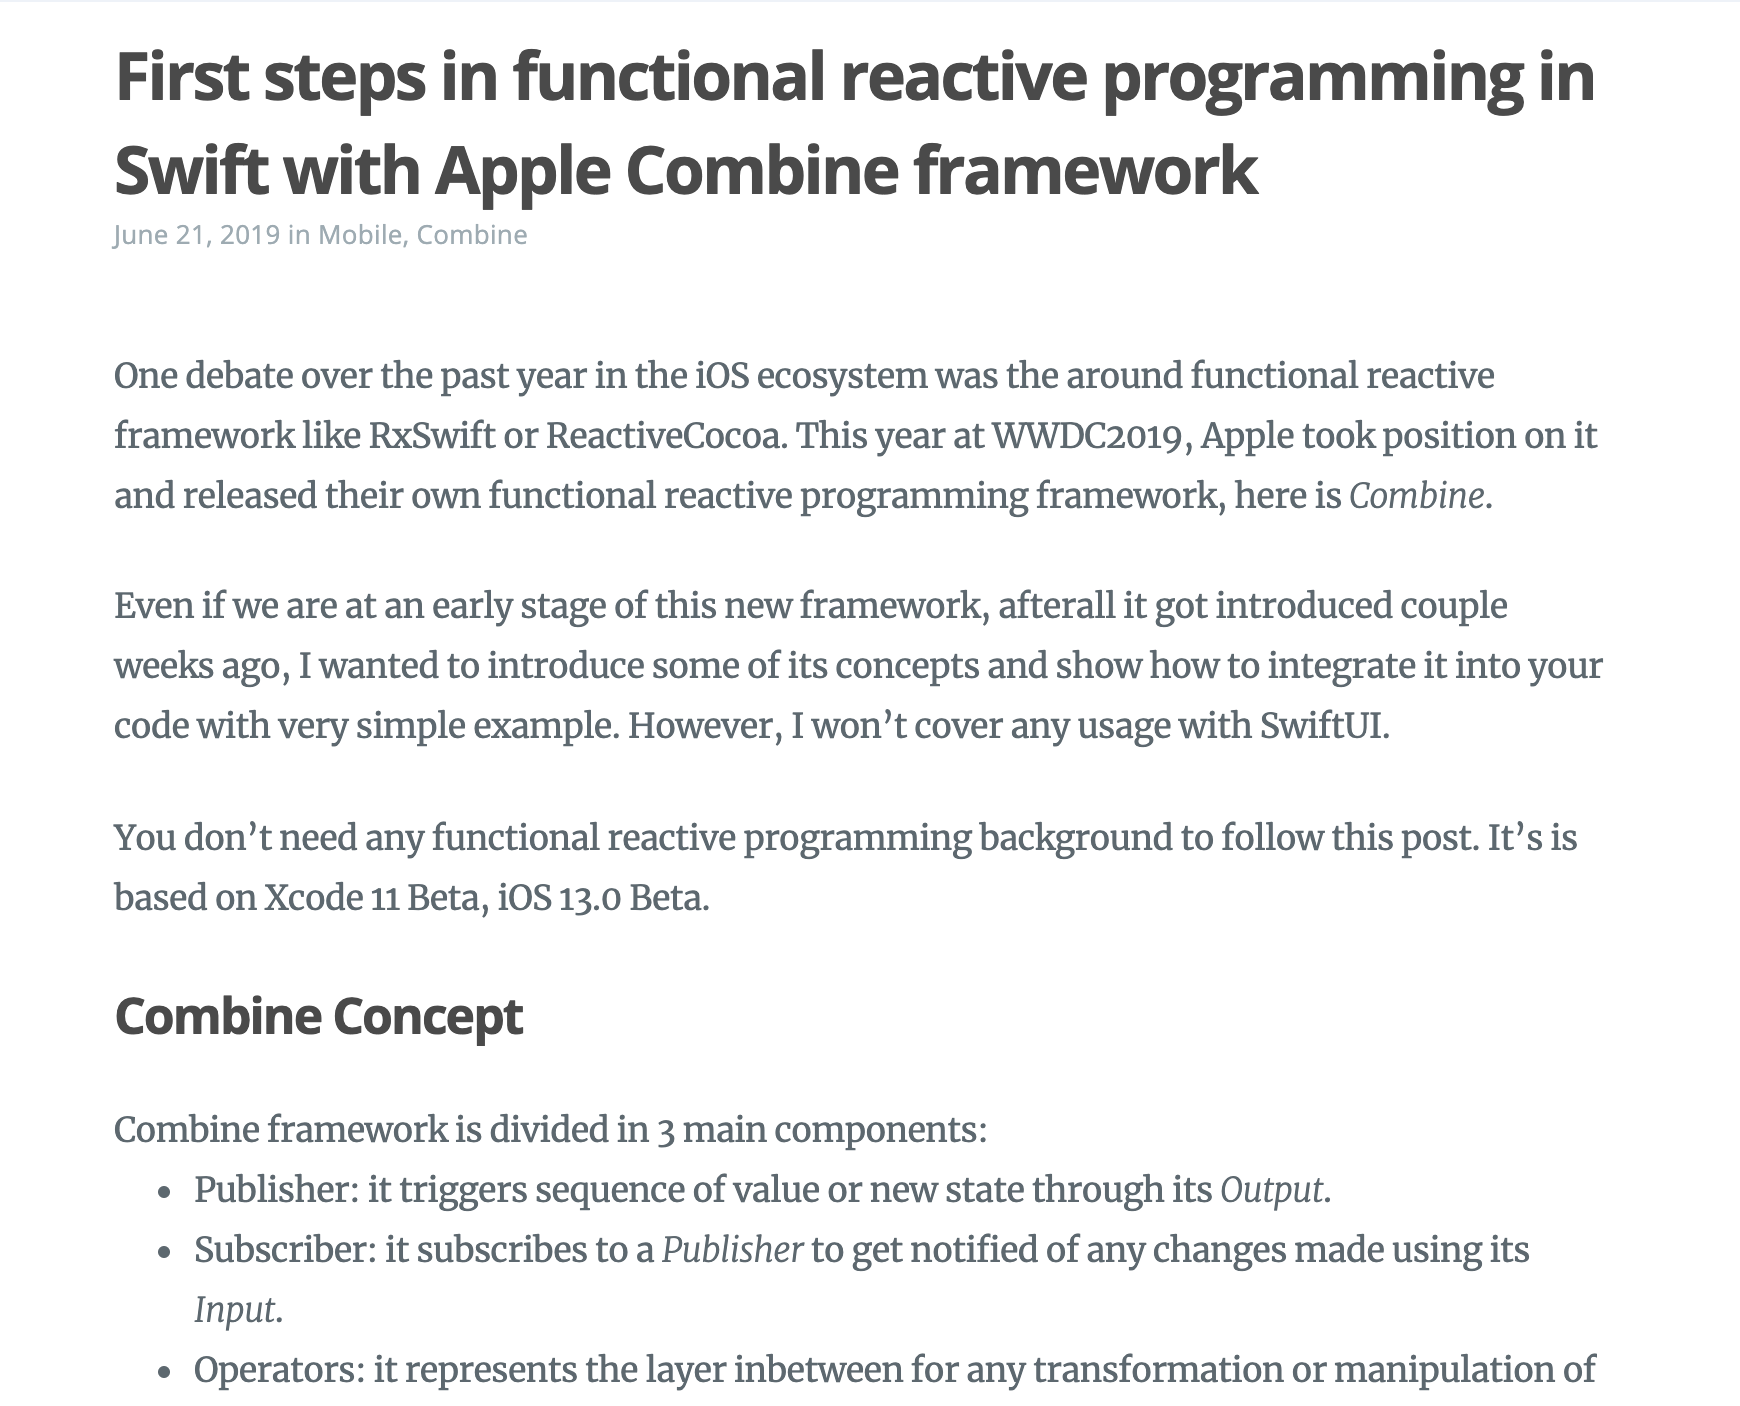 First steps in functional reactive programming in Swift with